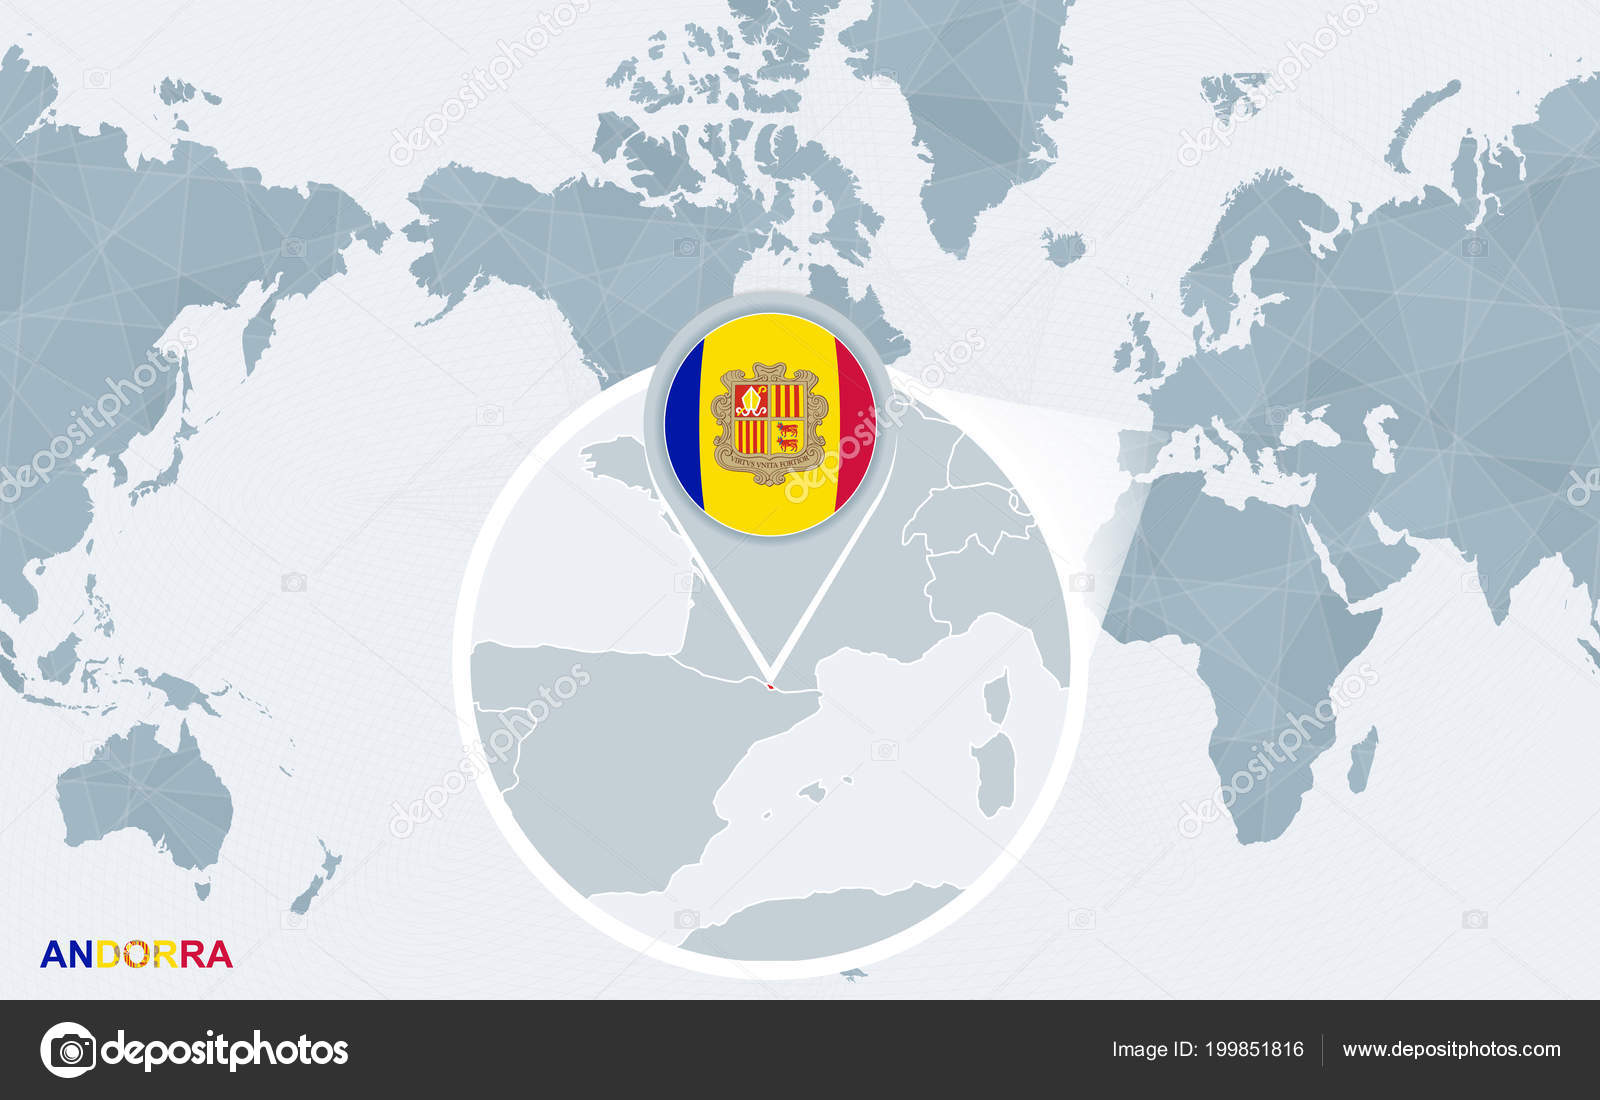 World Map Centered America Magnified Andorra Blue Flag Map Andorra